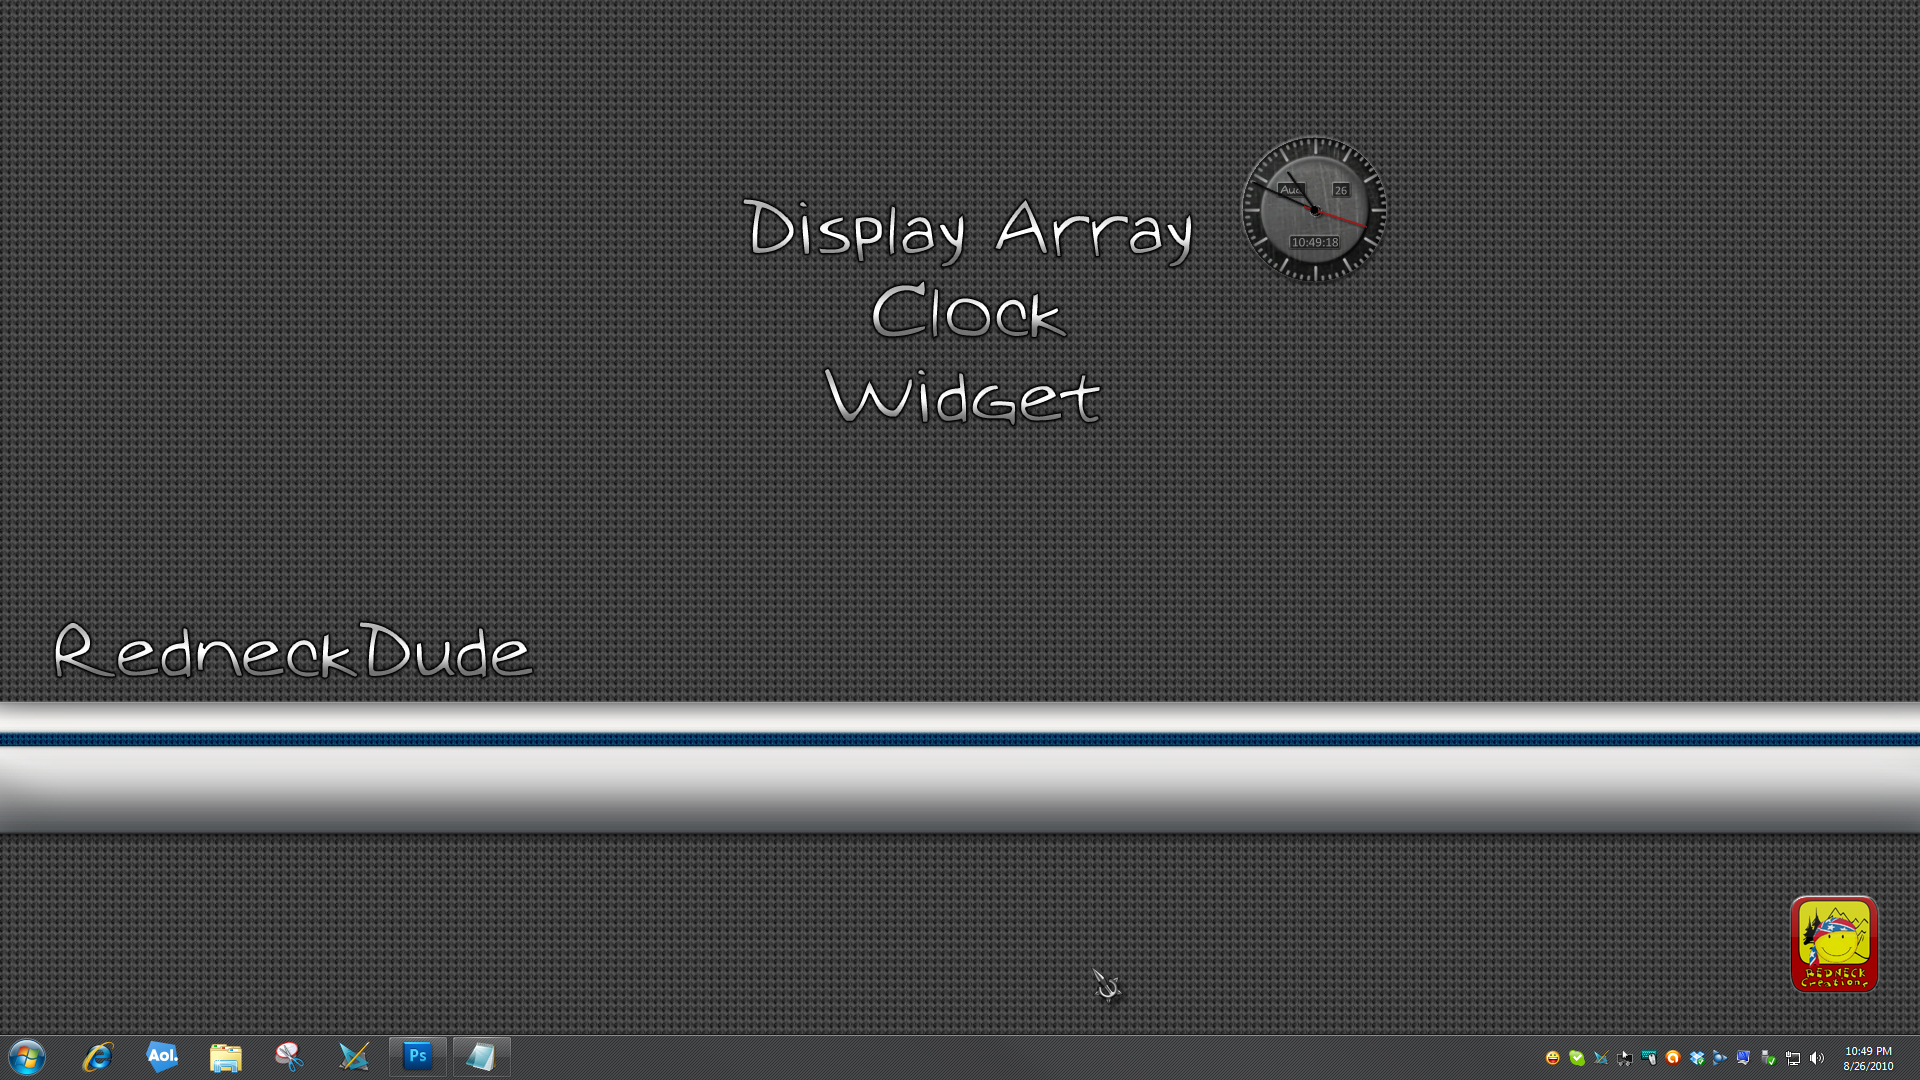 Display Array Clock Widget